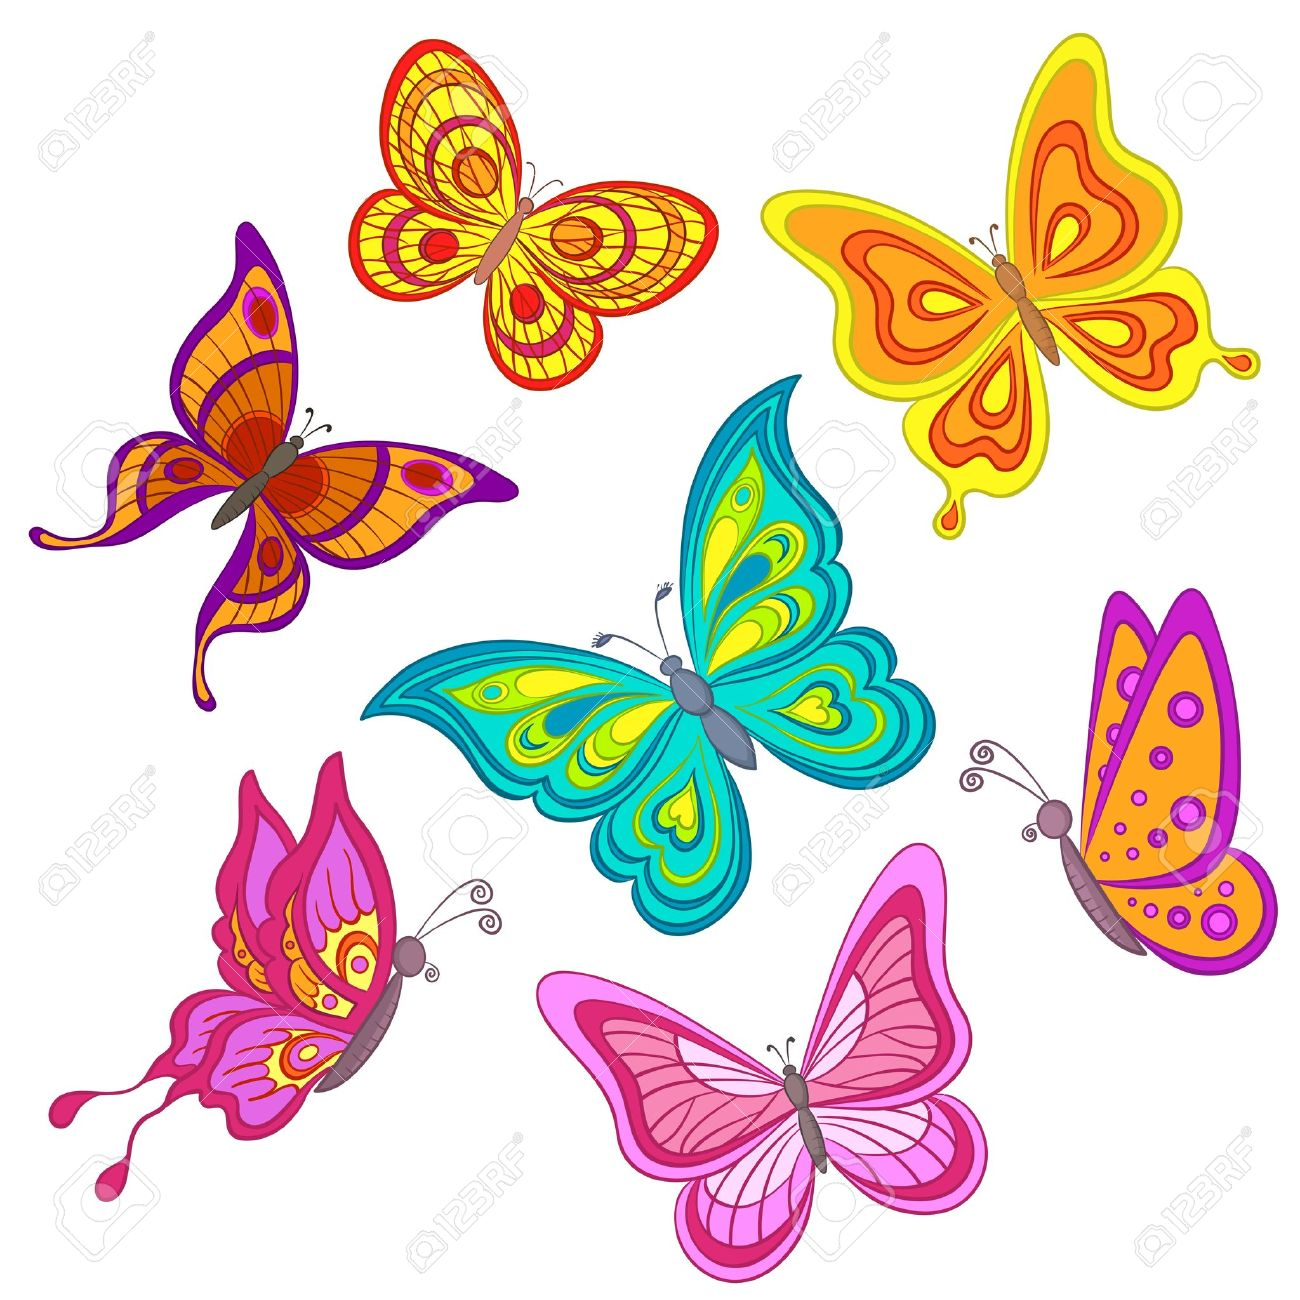 3,784 Monarch Butterfly Stock Vector Illustration And Royalty Free.